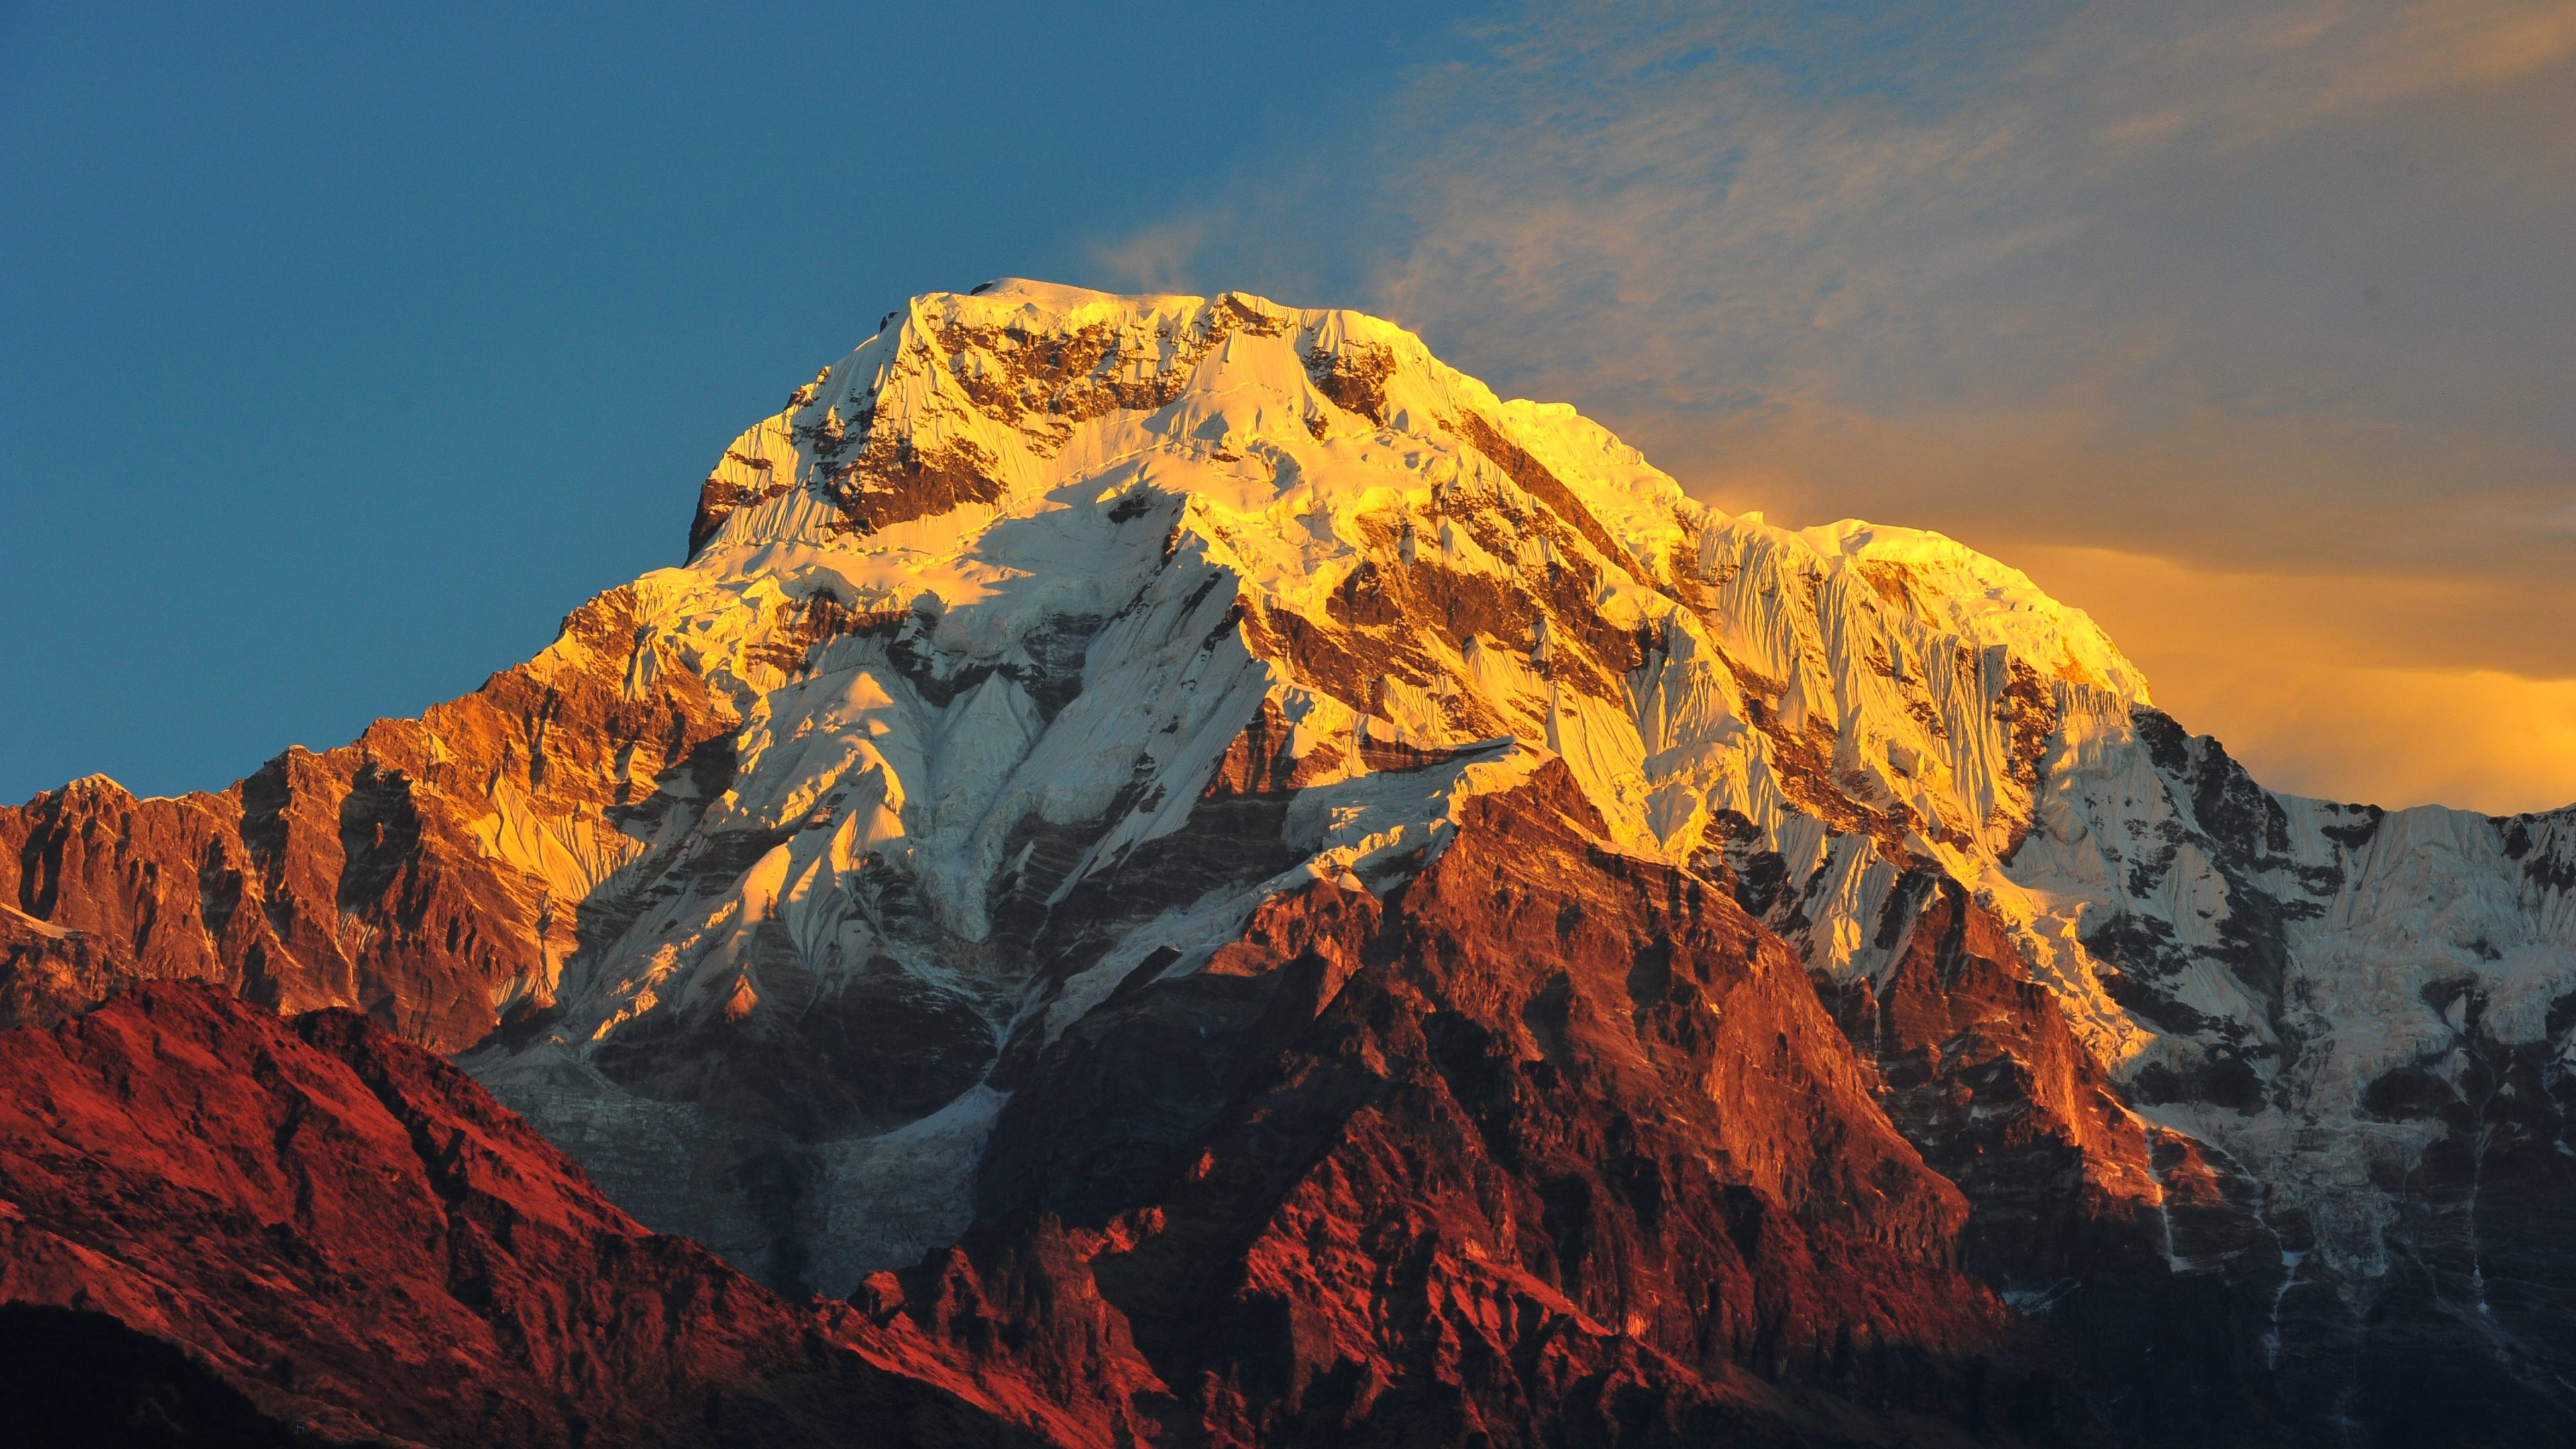 Mount Everest Wallpapers and Background Images   stmednet 3840x2160